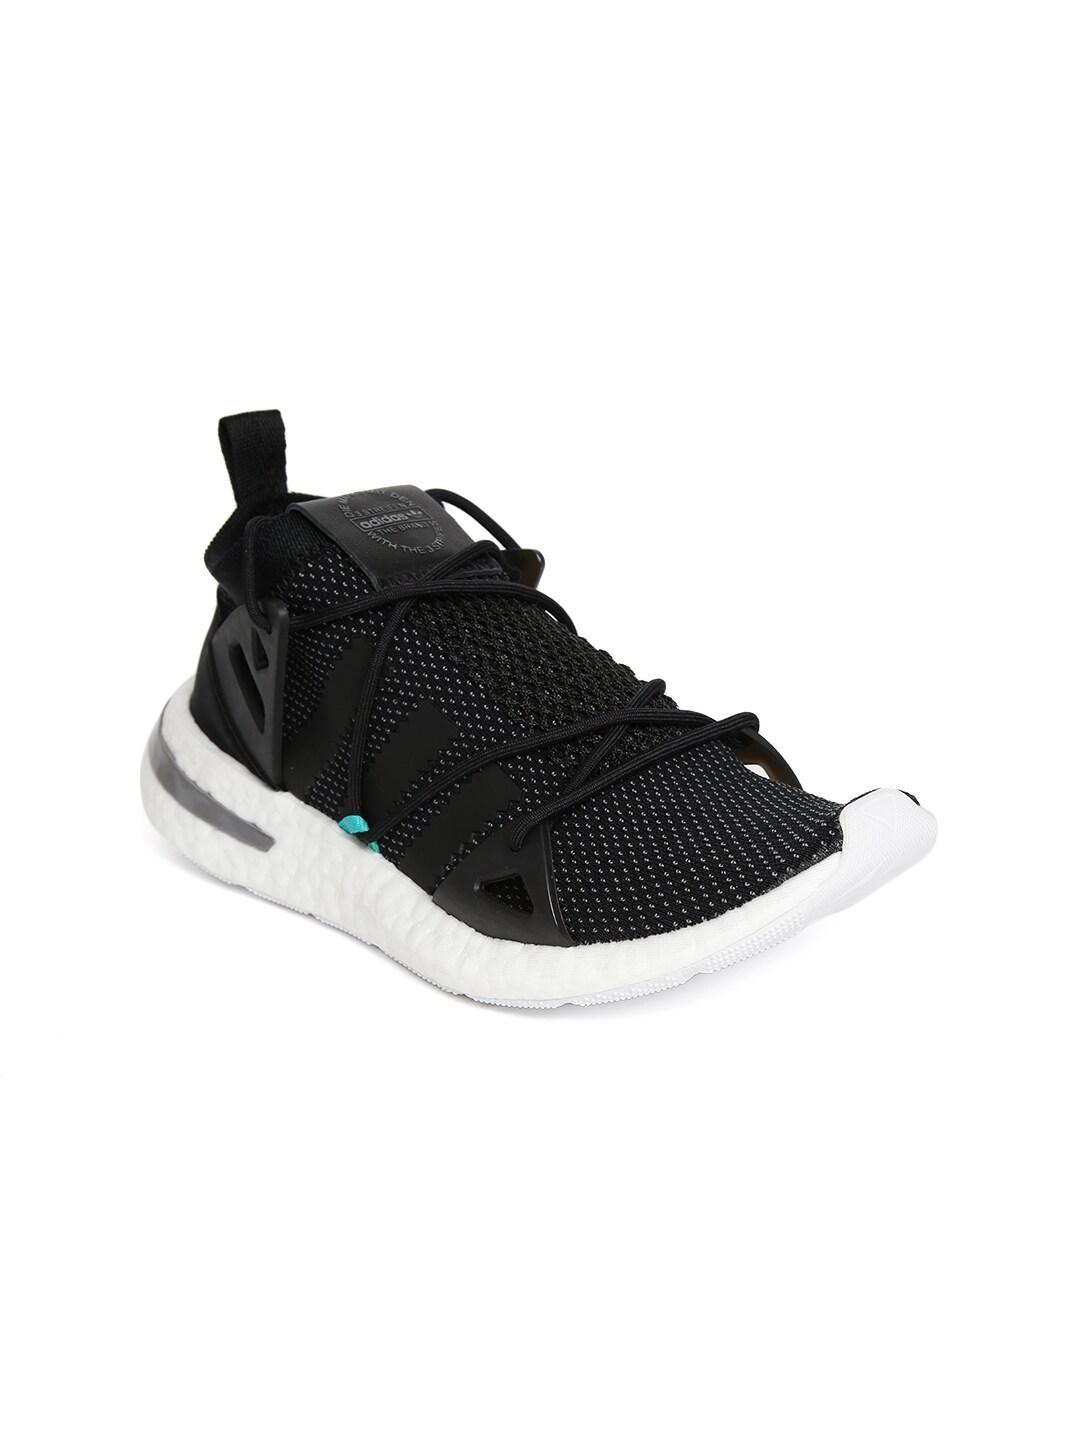 new arrival 7c32a c4d81 Women s Adidas Shoes - Buy Adidas Shoes for Women Online in India